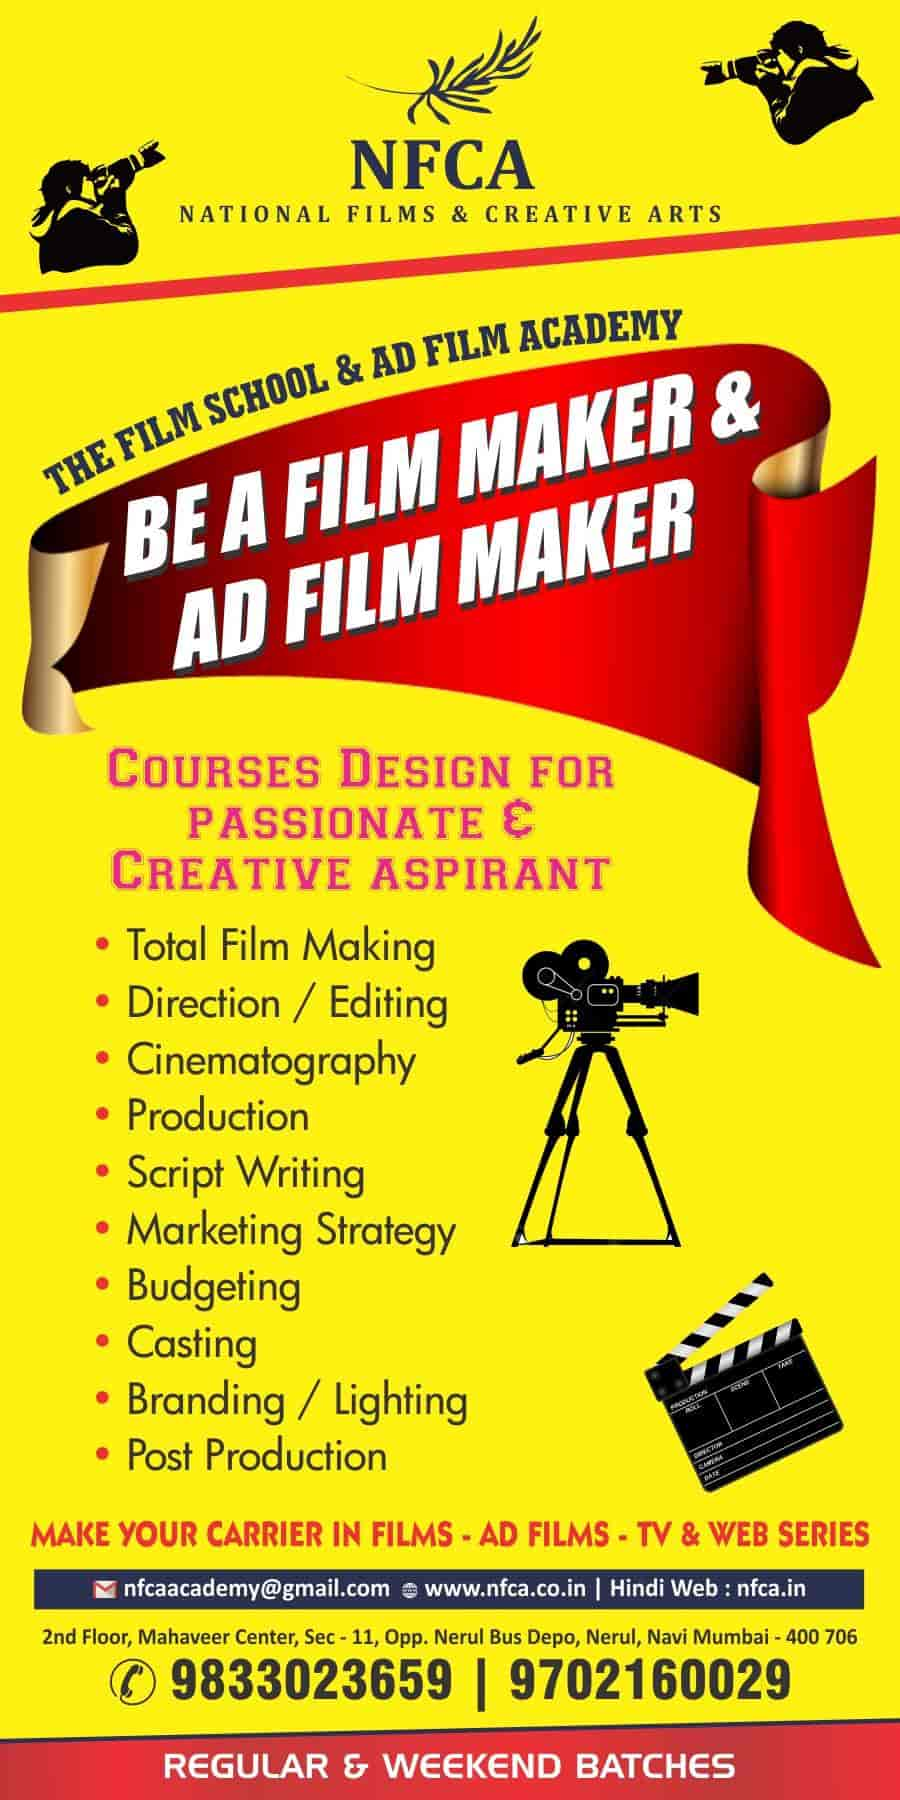 Nfca Academy Of Film Making Courses Diploma In Film Editing In